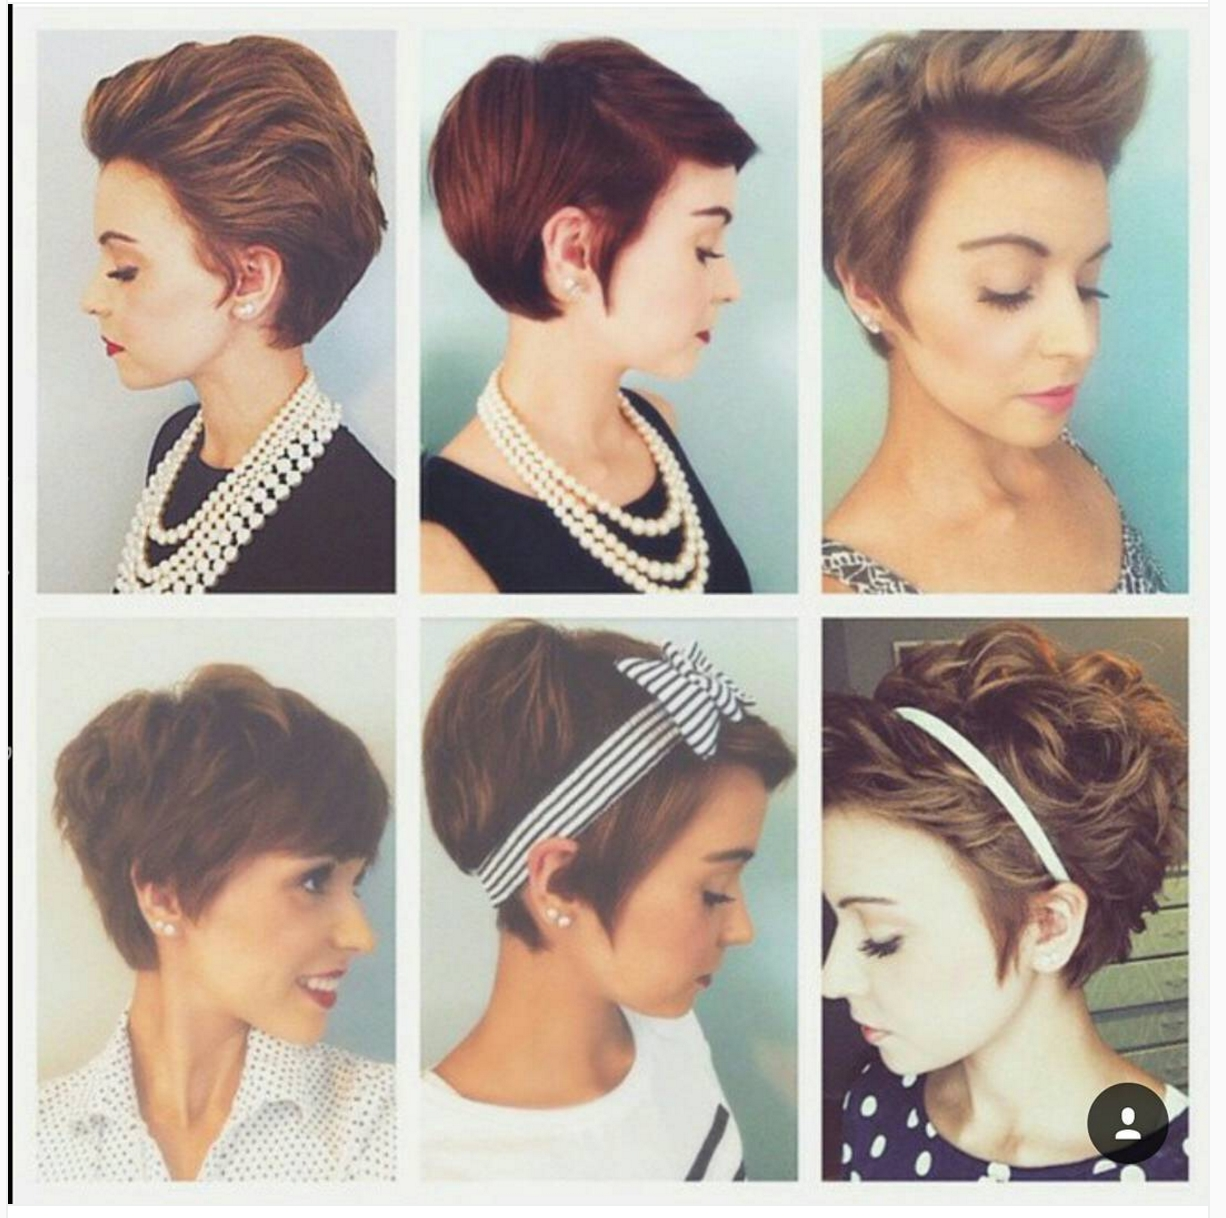 Showing Photos Of Styling Pixie Hairstyles View 1 Of 15 Photos